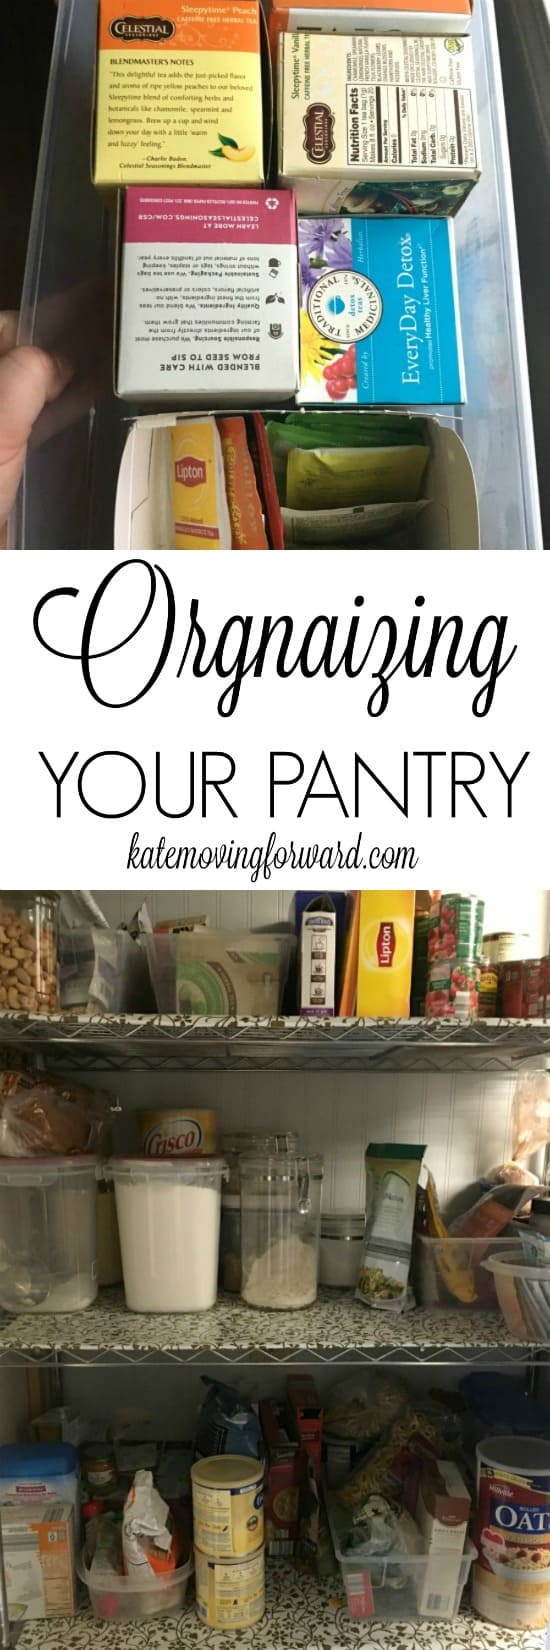 Organizing Your Pantry - Pantry Organization - Organizing Cupboards - Cleaning Pantry -